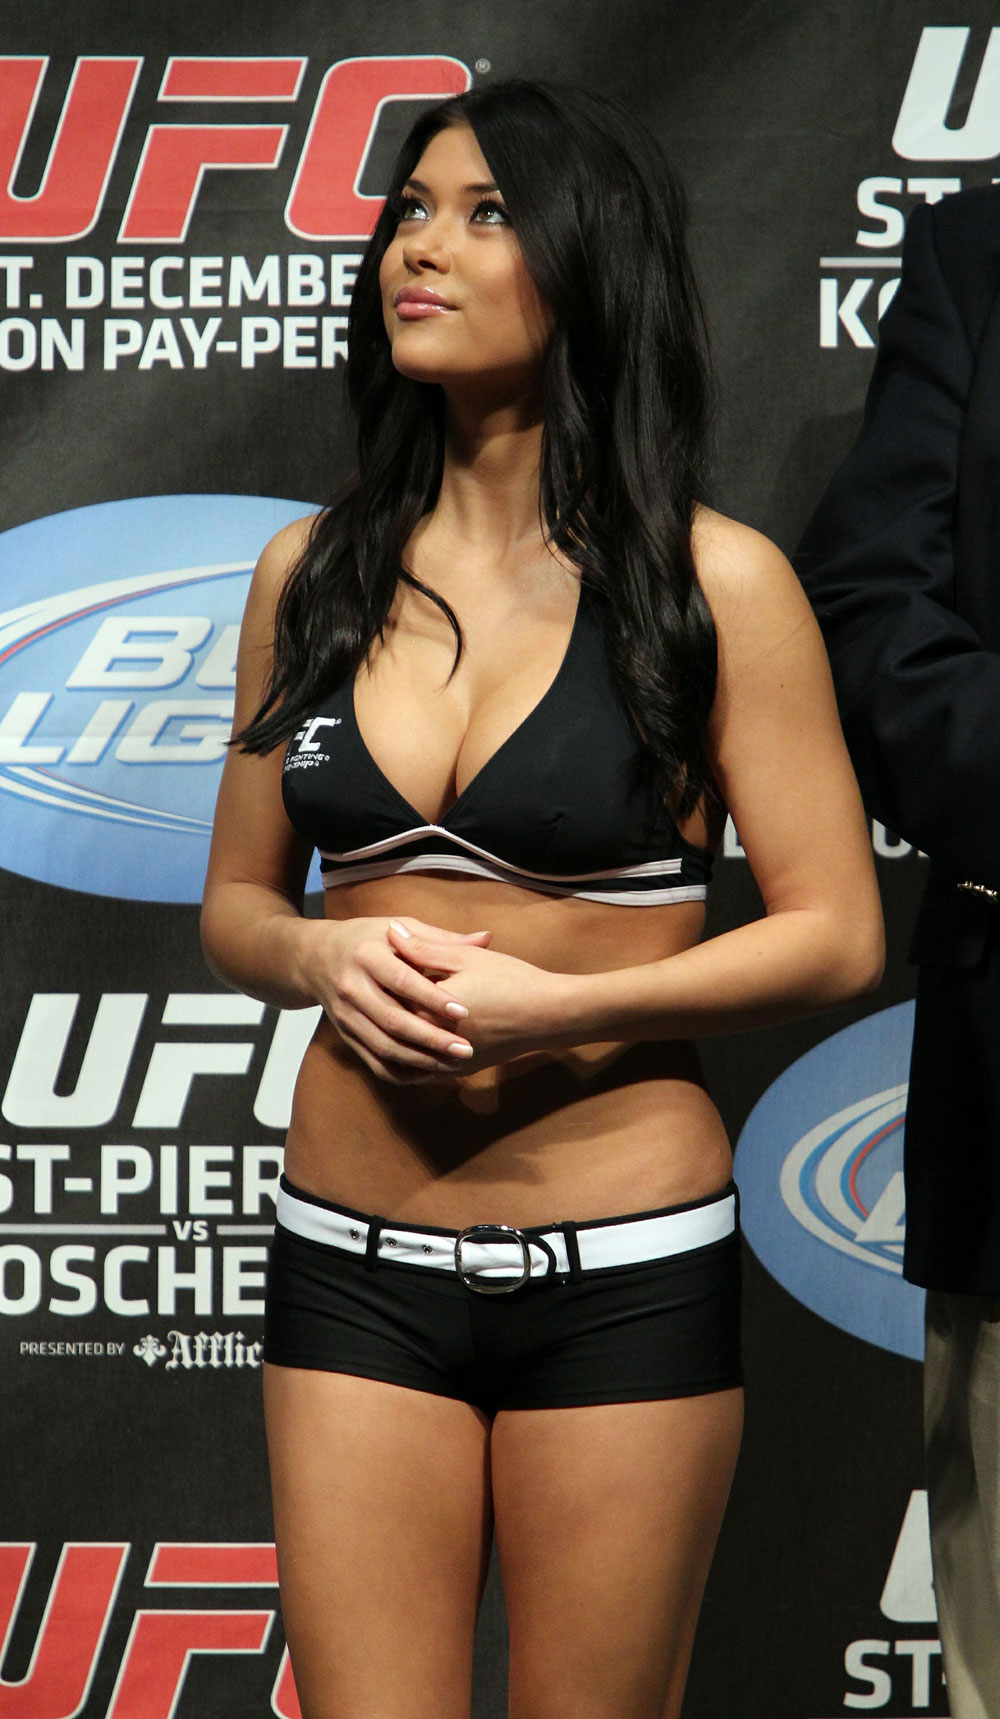 UFC 124 Weigh-in: Octagon Girl Arianny Celeste